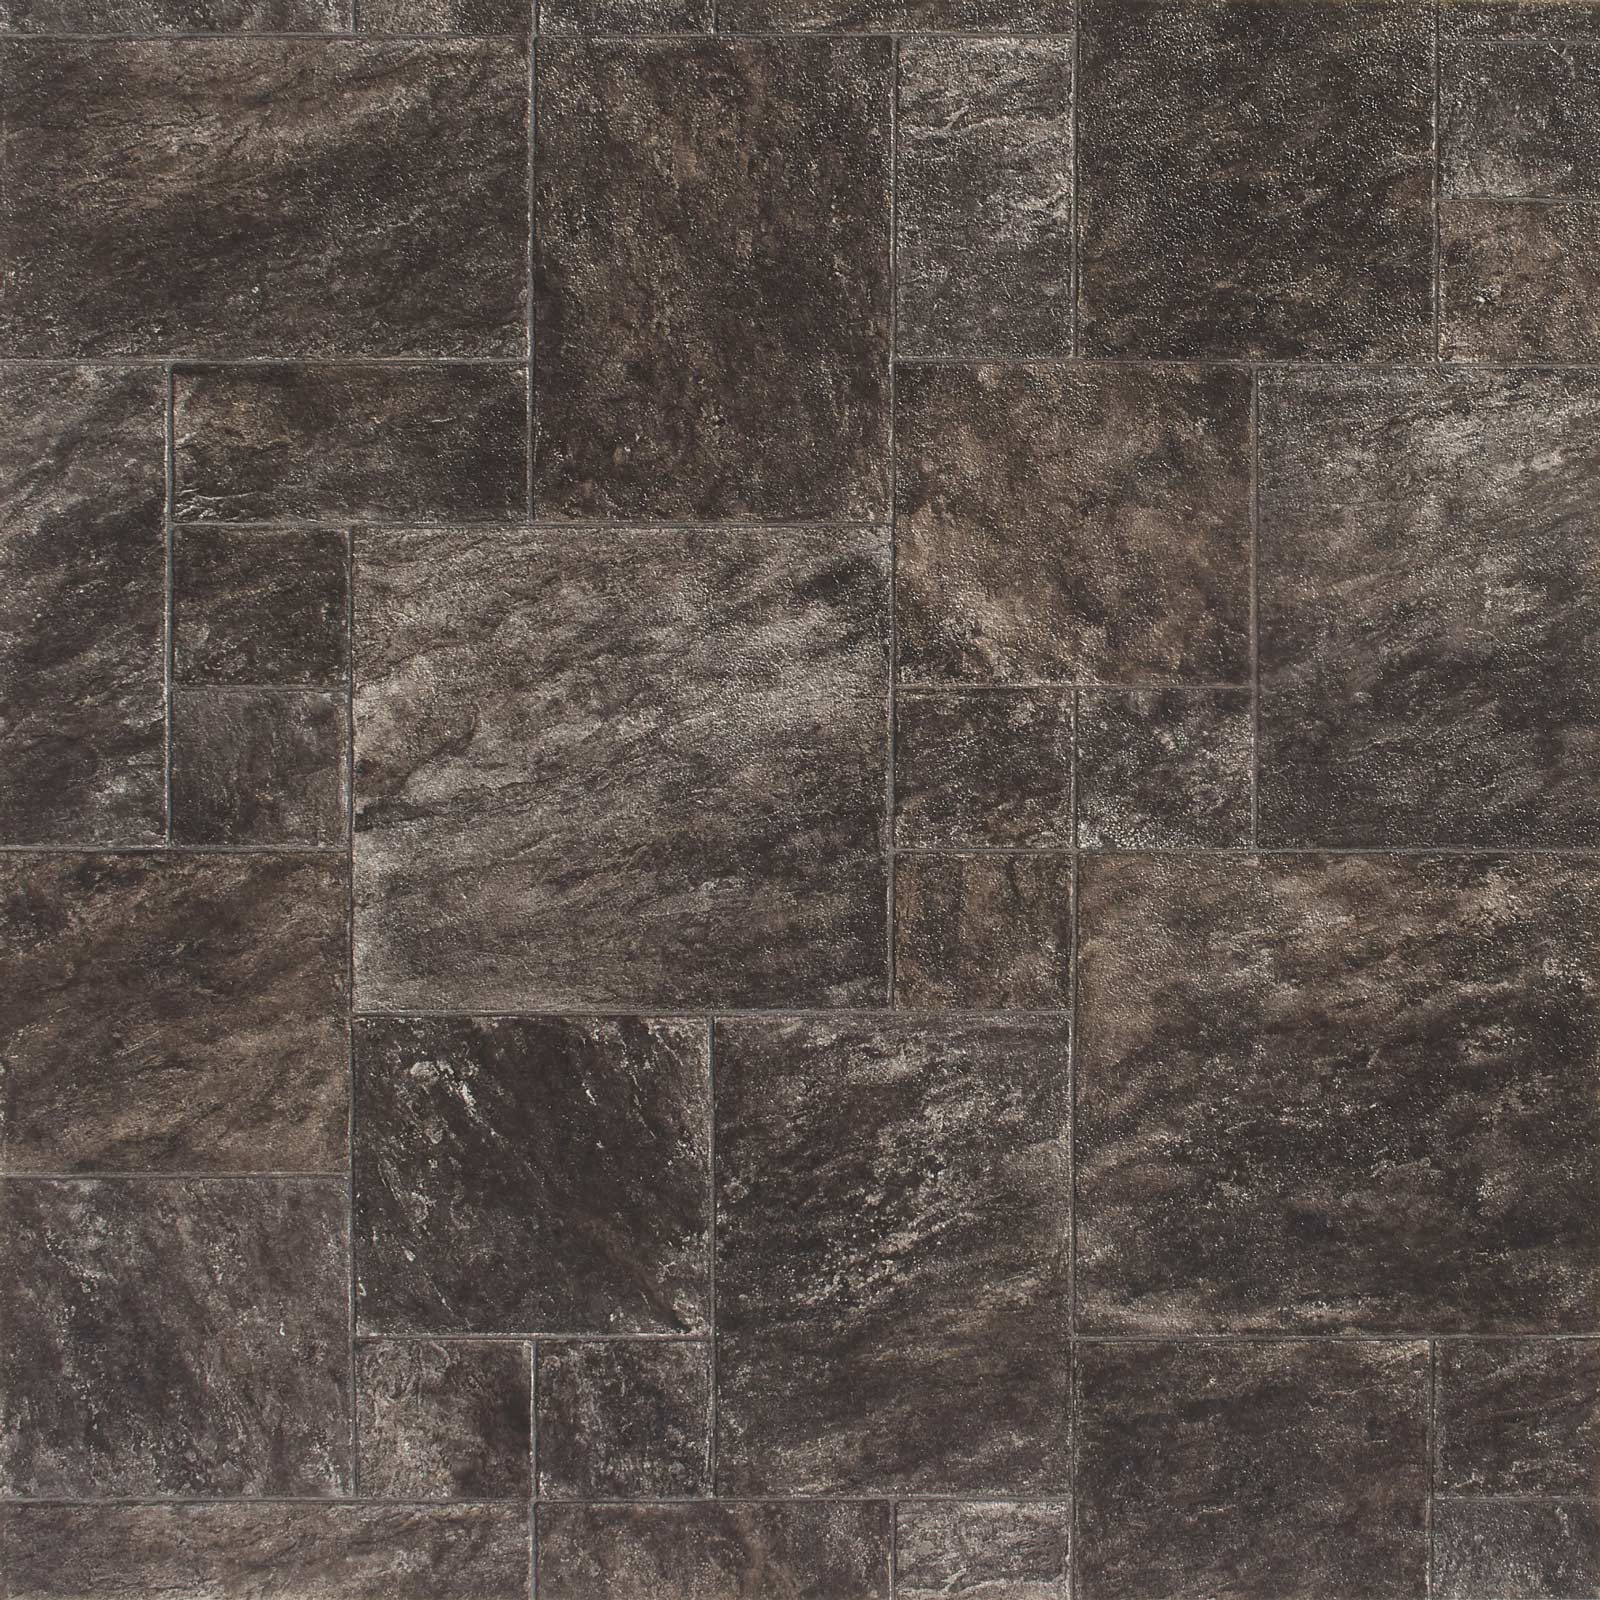 Santino 9158 Tile Effect Ravenna Vinyl Flooring - Far